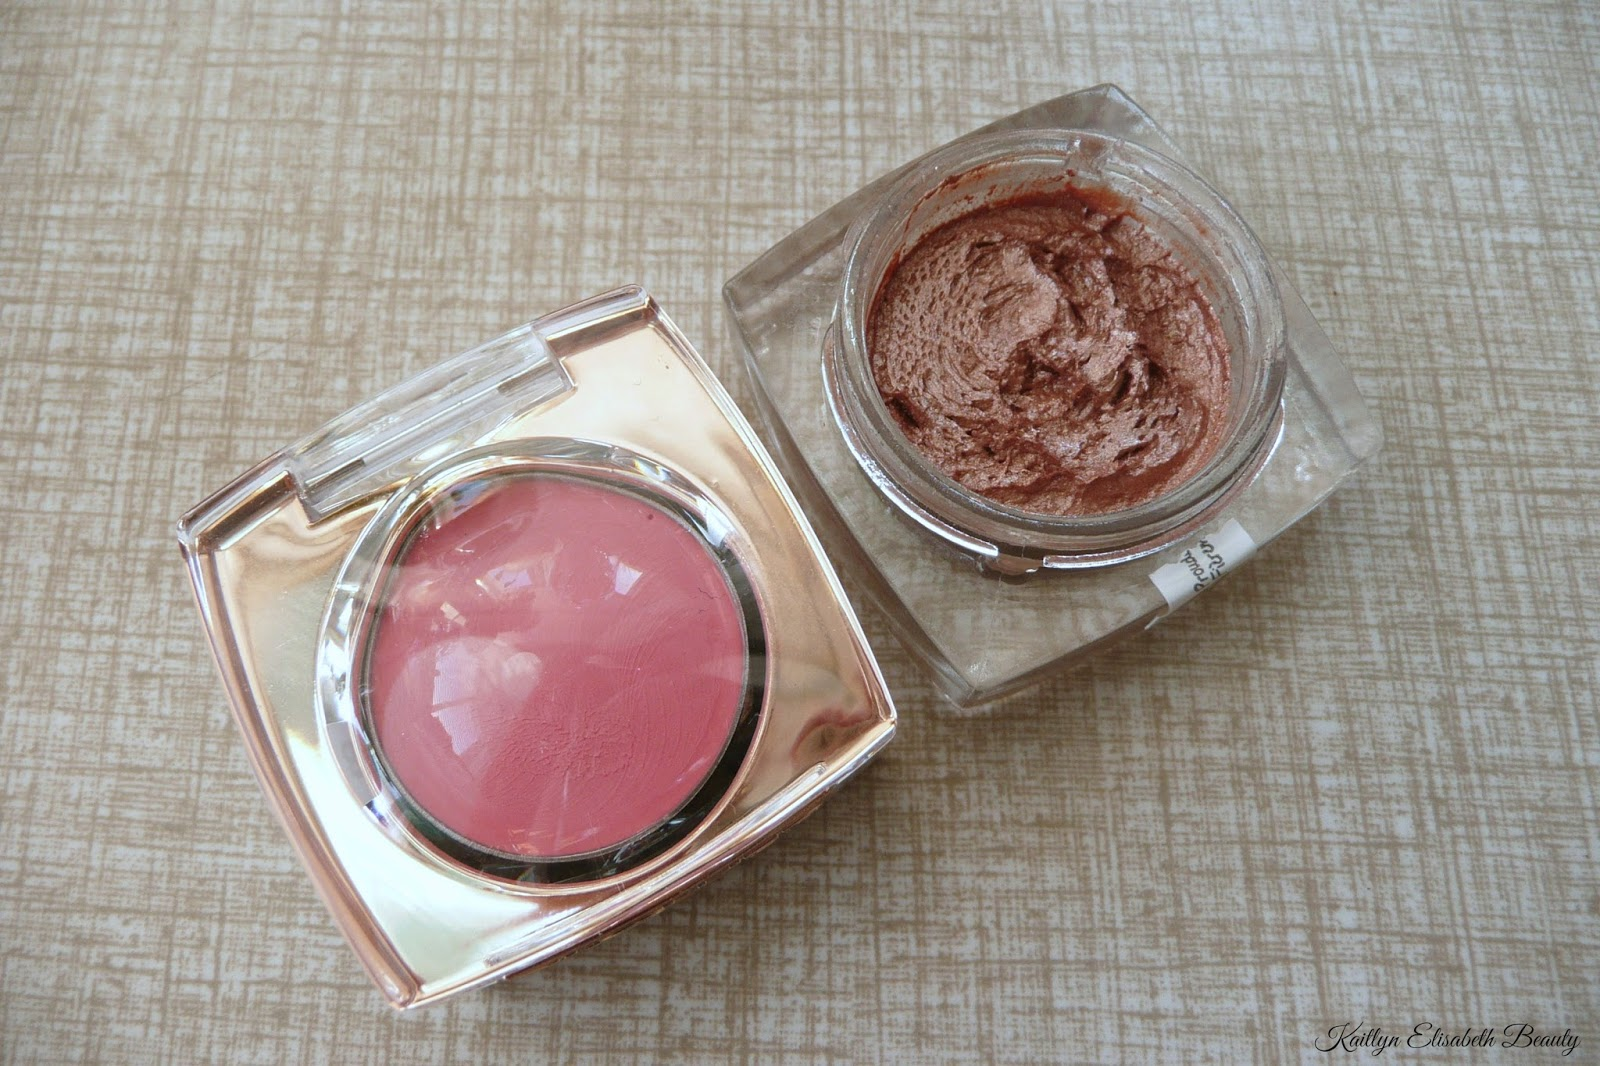 Flower beauty archives kaitlyn elisabeth beauty thoughts flower beauty cream products izmirmasajfo